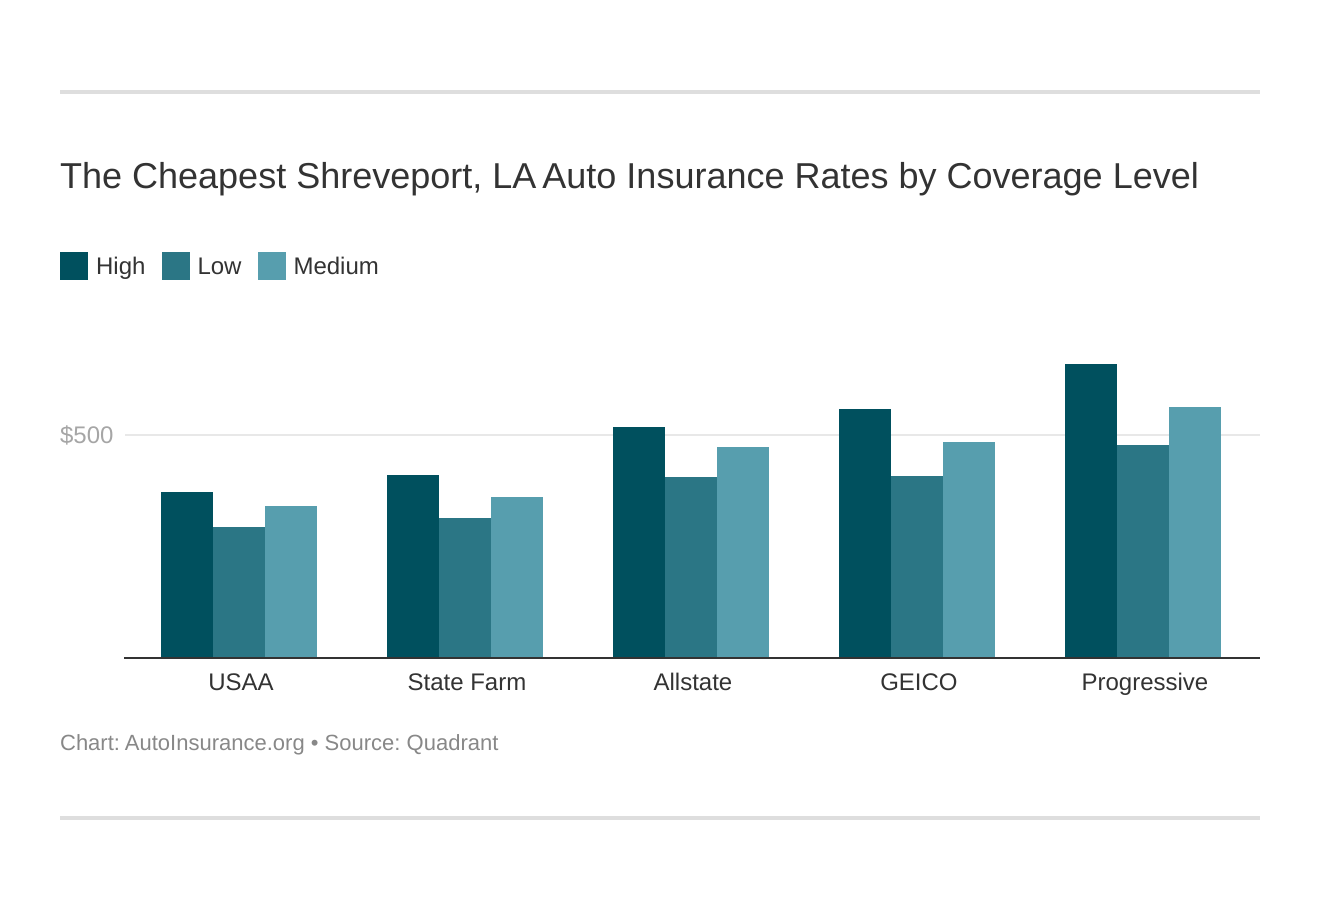 The Cheapest Shreveport, LA Auto Insurance Rates by Coverage Level